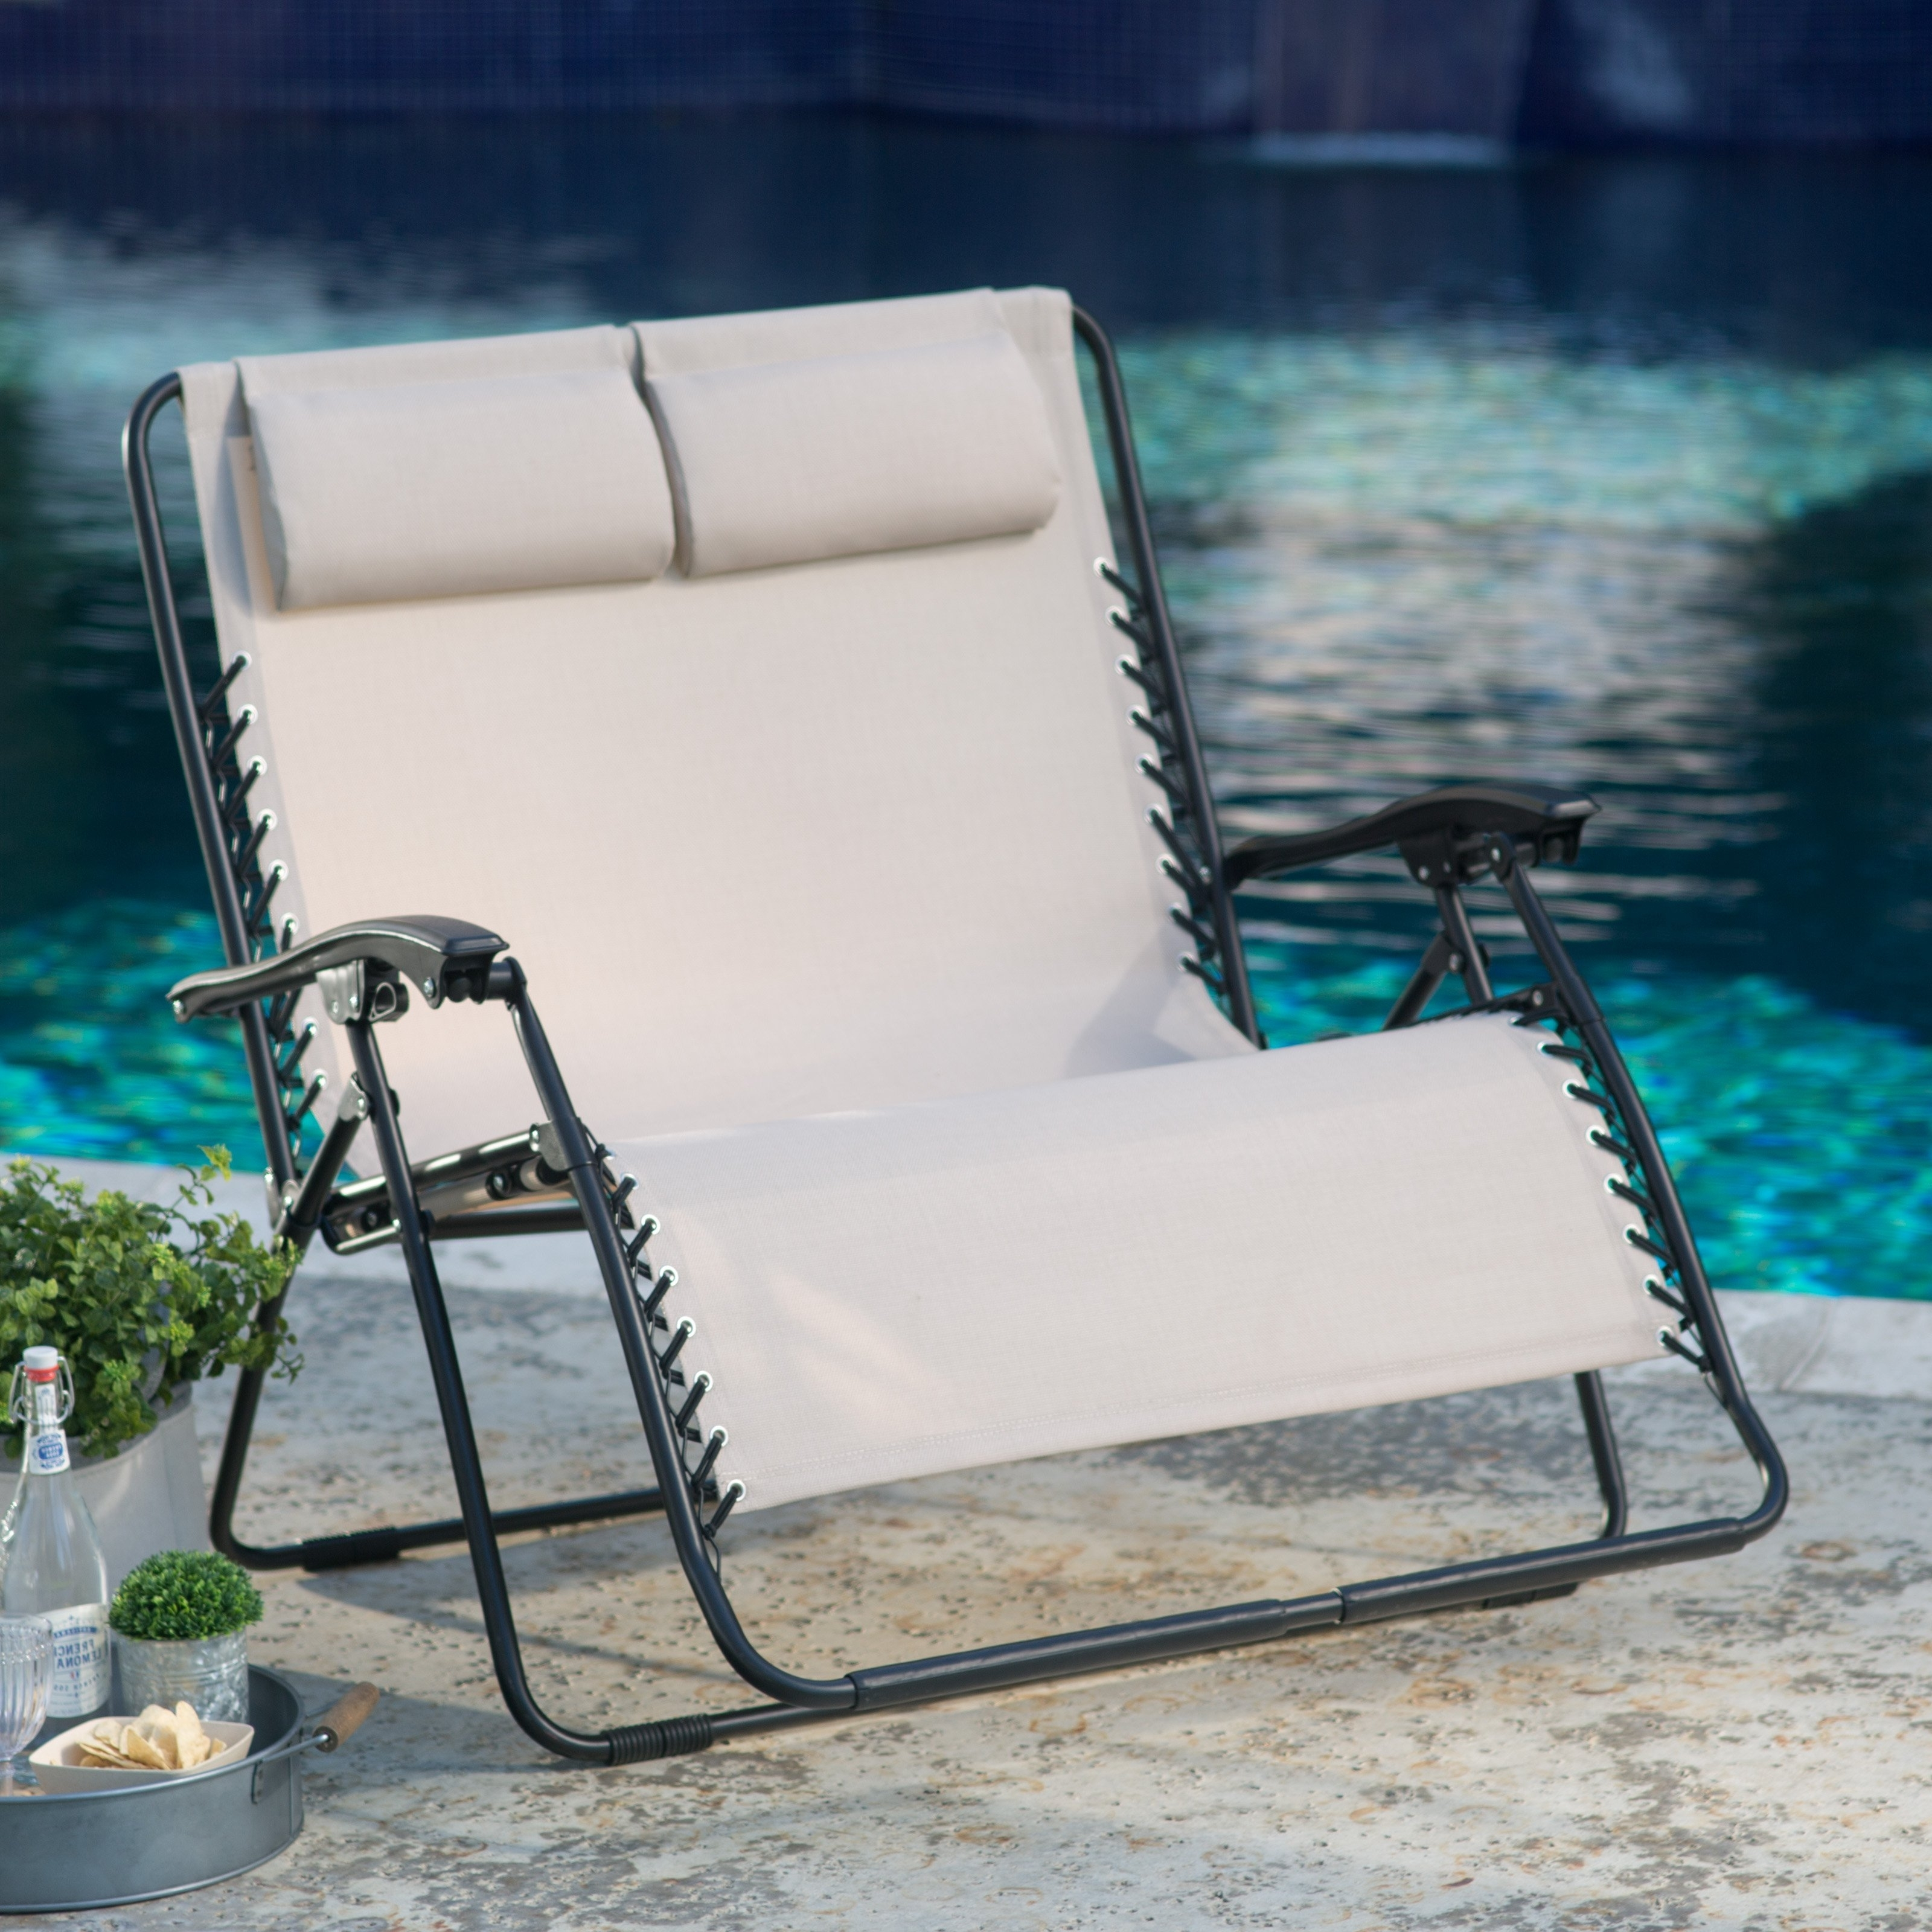 Chaise Lounge Chairs At Kohls Within 2018 Chair : Xl Anti Gravity Chair Kohls Amazing Oversized Antigravity (View 5 of 15)